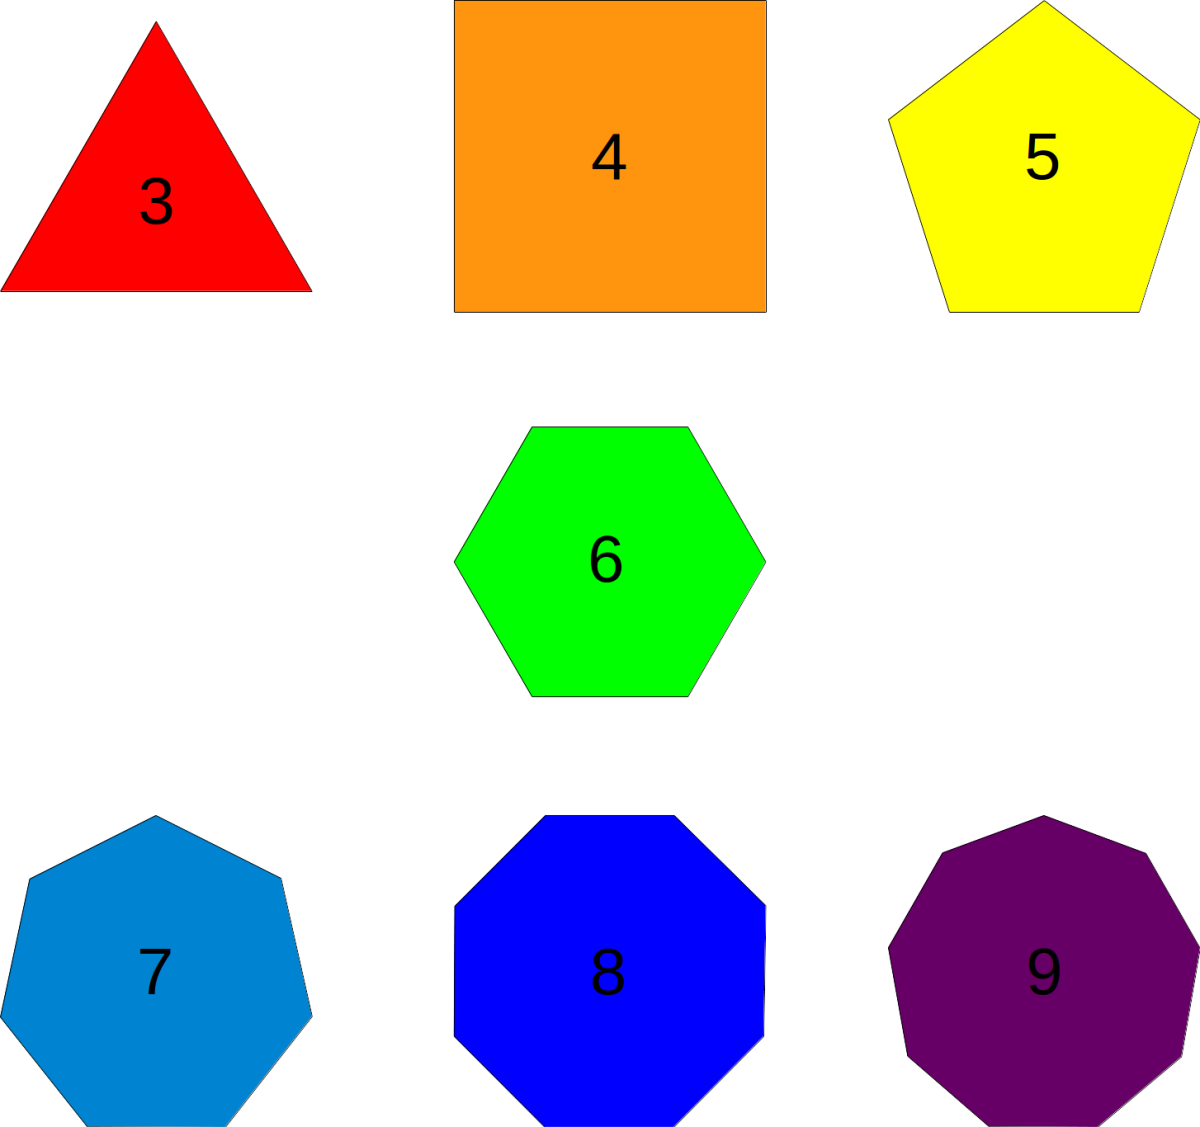 The Seven Lords of Hidden Amenti depicted 2-dimensional.